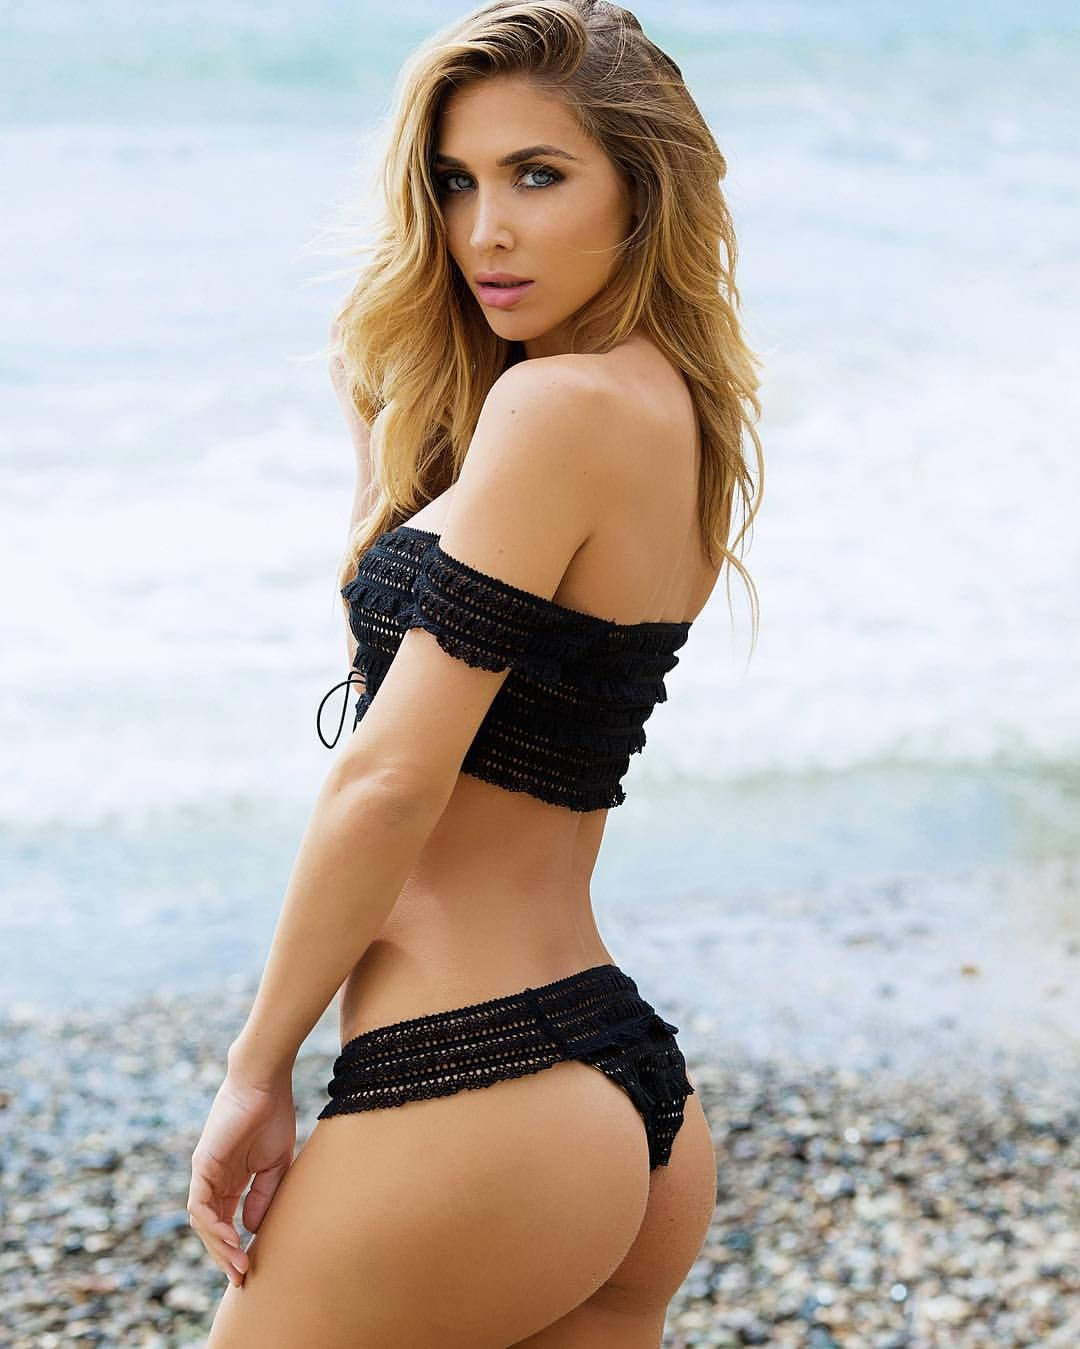 Instagram Ann-Kathrin Brommel nude (14 photos), Tits, Sideboobs, Feet, bra 2019